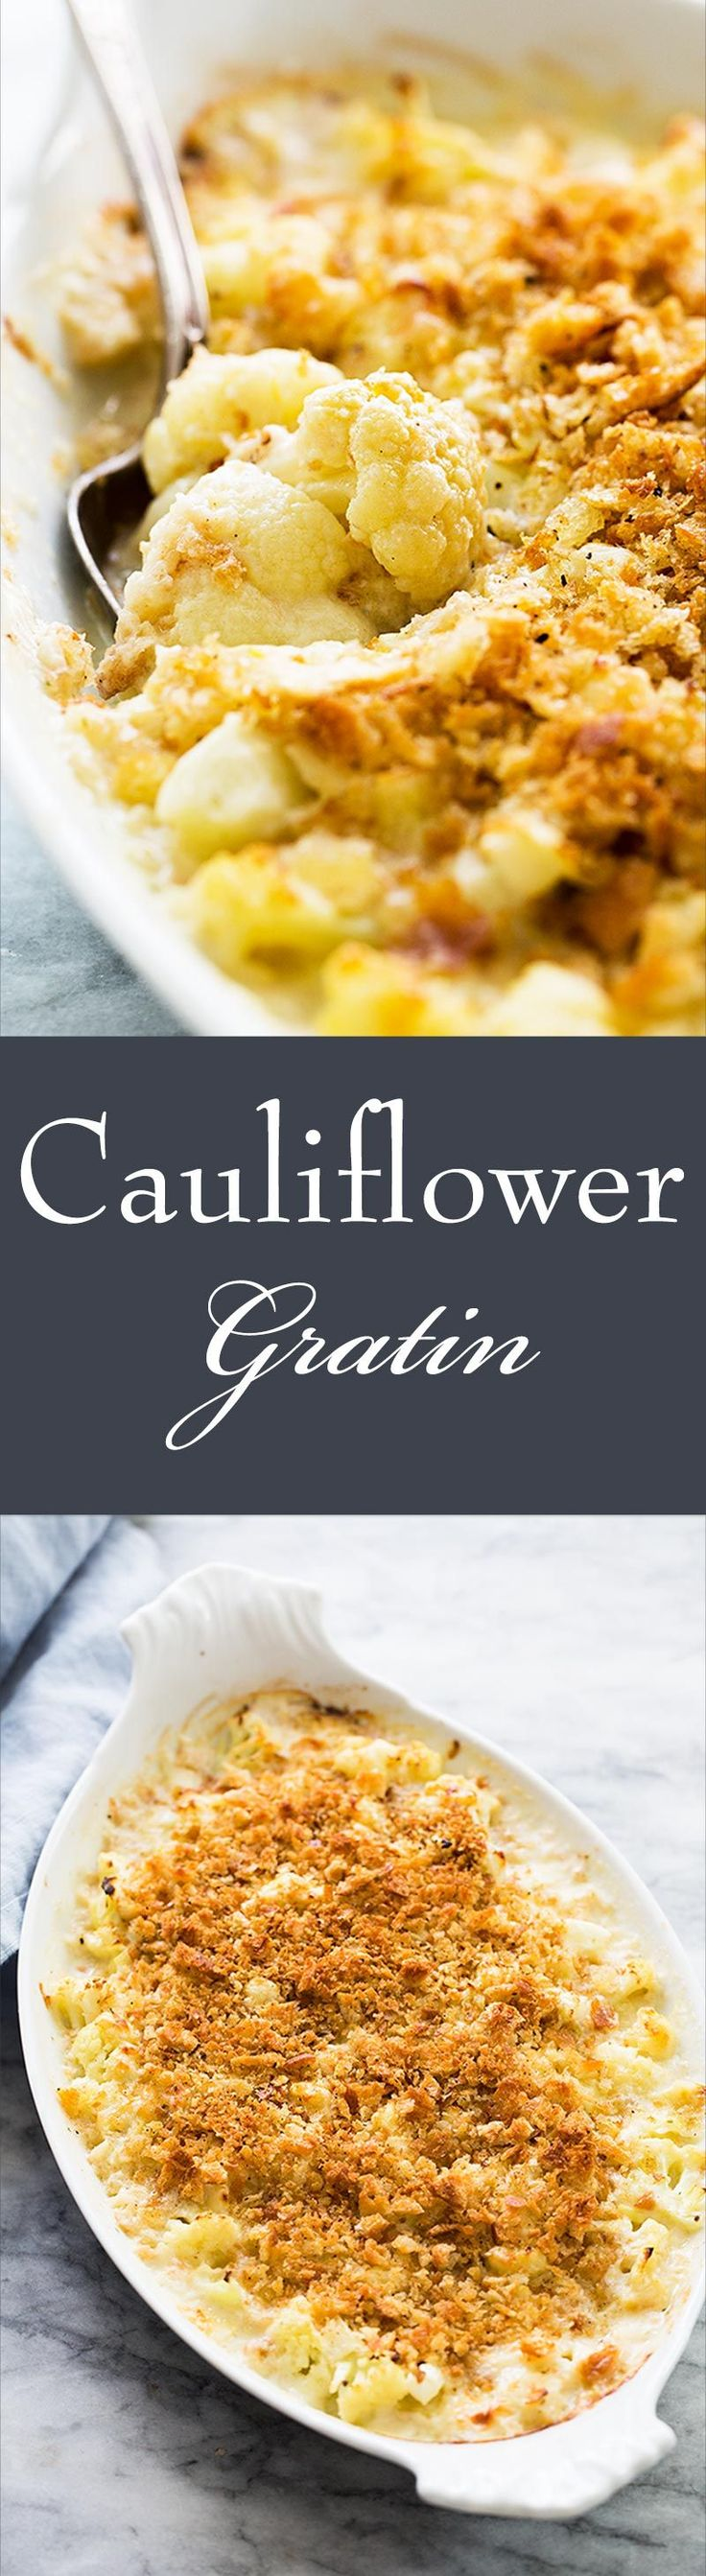 Cauliflower Gratin ~ Cheesy cauliflower gratin with nutty Gruyere cheese, sautéed leeks, and butter toasted breadcrumb topping! ~ SimplyRecipes.com